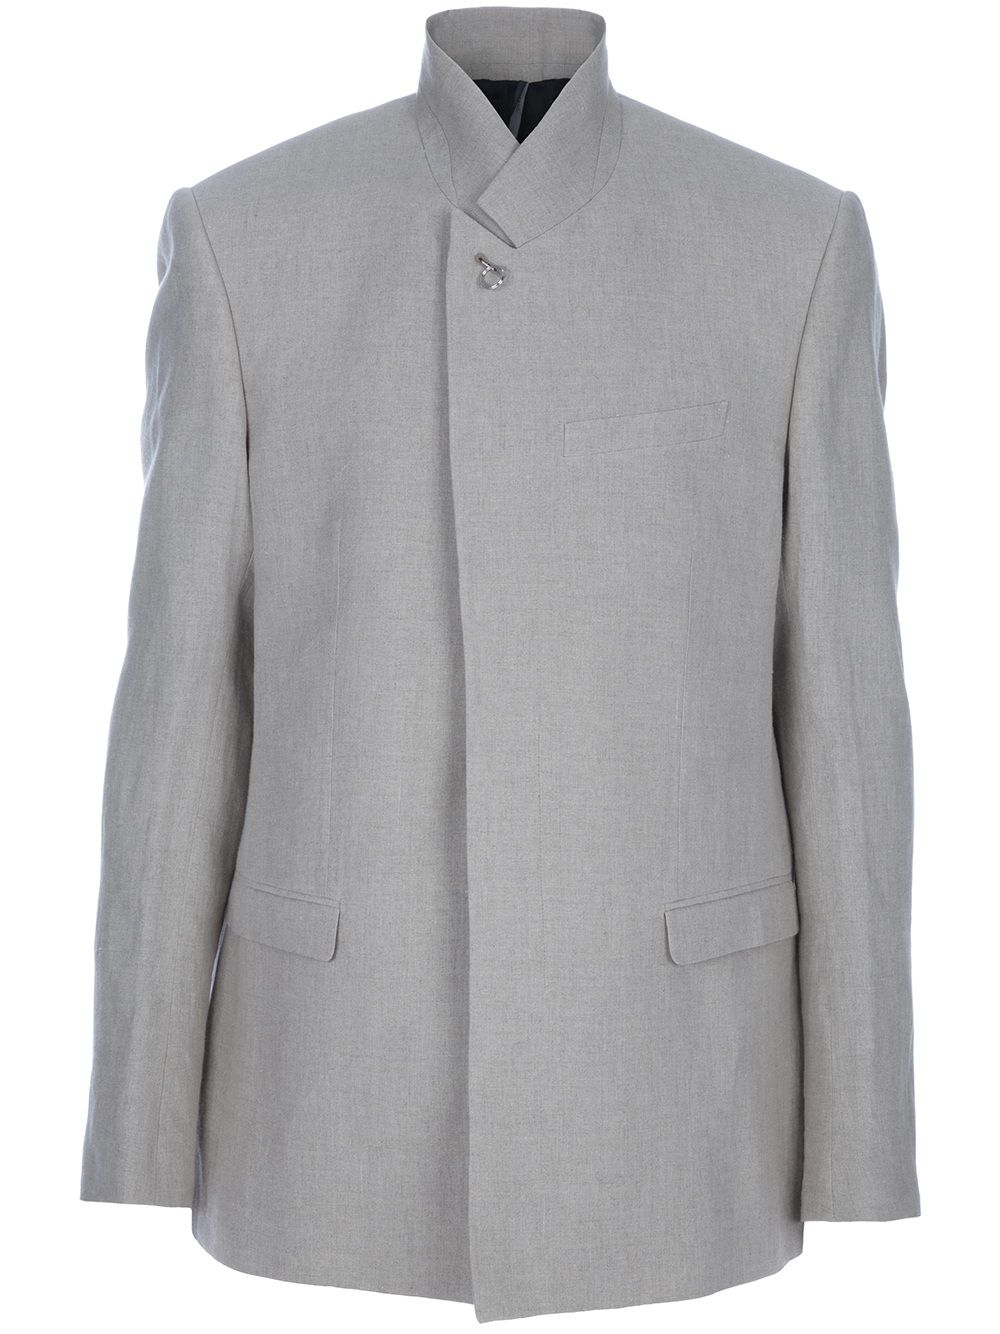 DIOR HOMME  LINEN JACKET  farfetch fromGiulio Man  available from farfetch.com •ƒƒ•